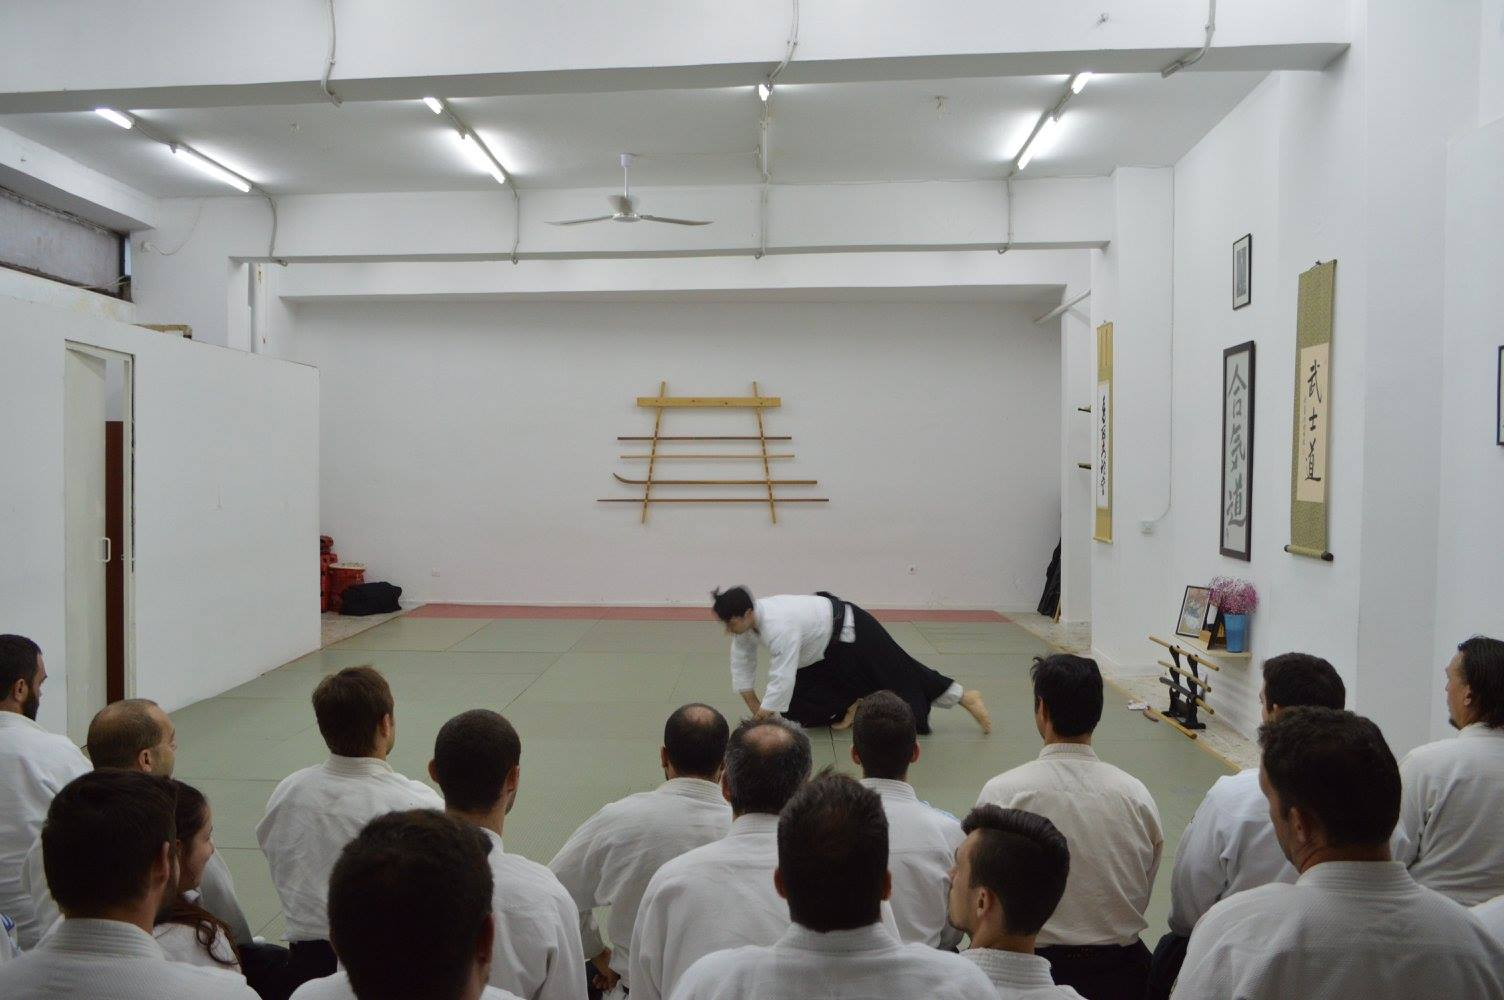 abc common aikido practice21